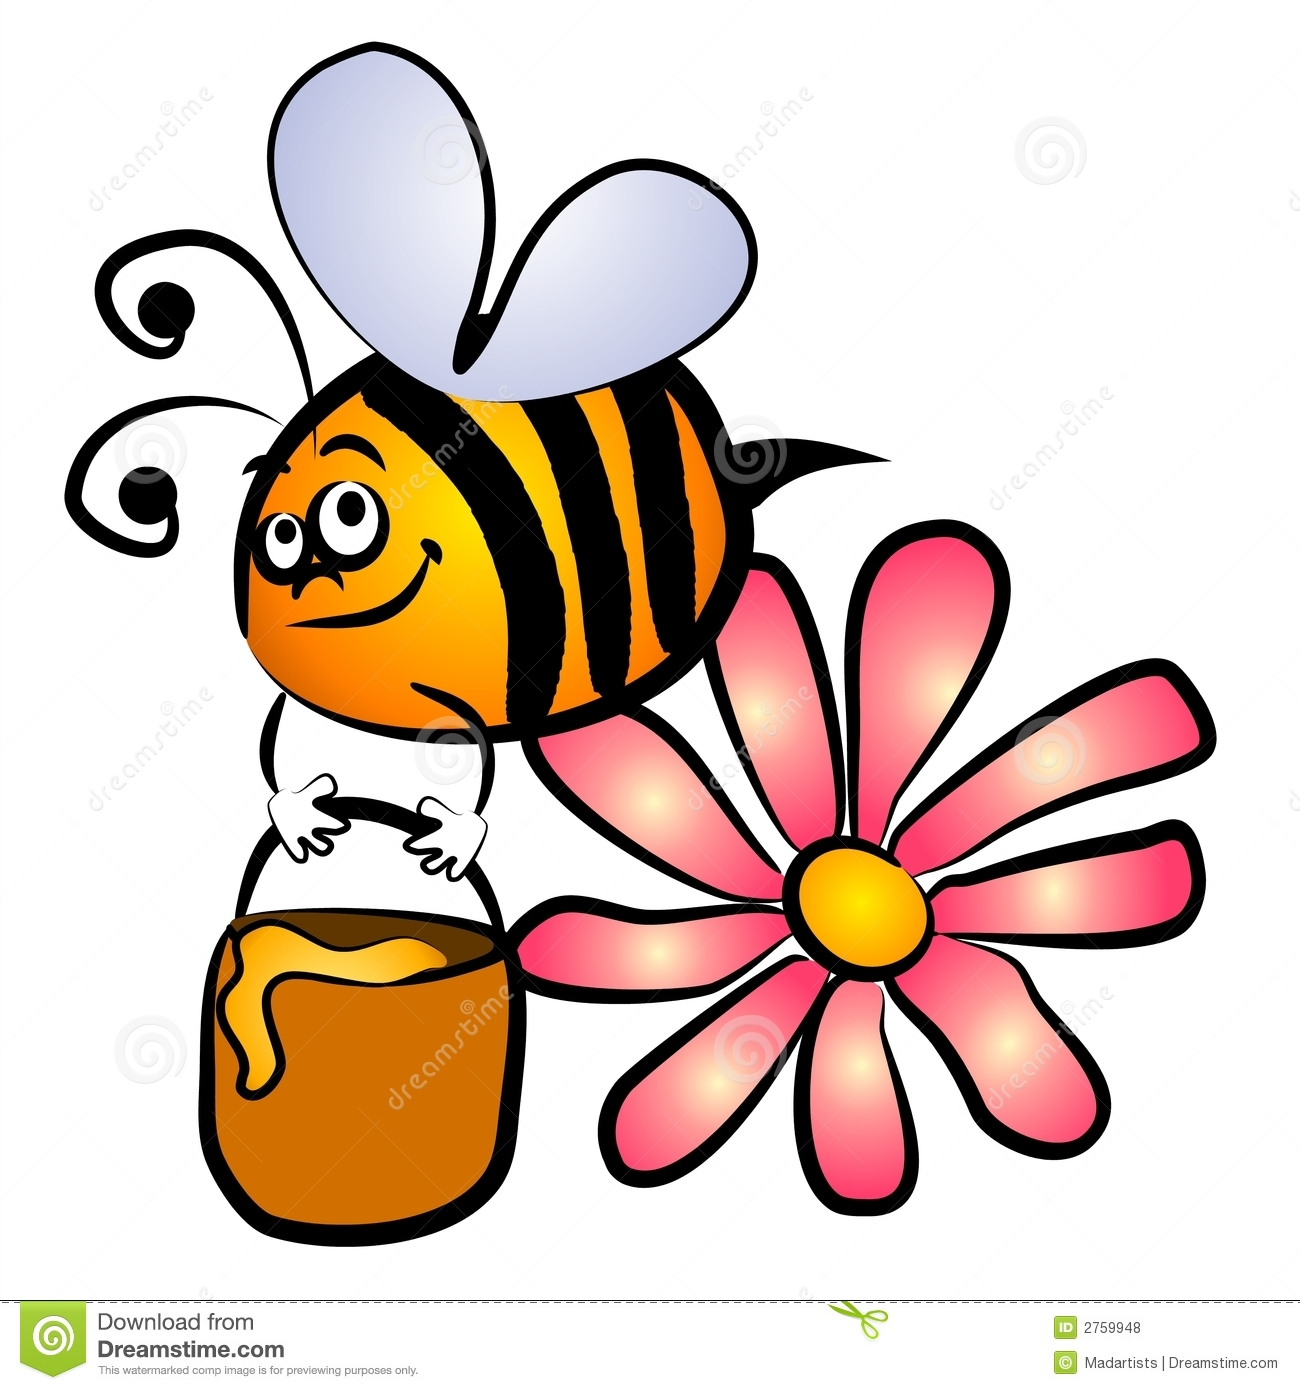 Bumble Bee Honey Clip Art Royalty Free Stock Photos.